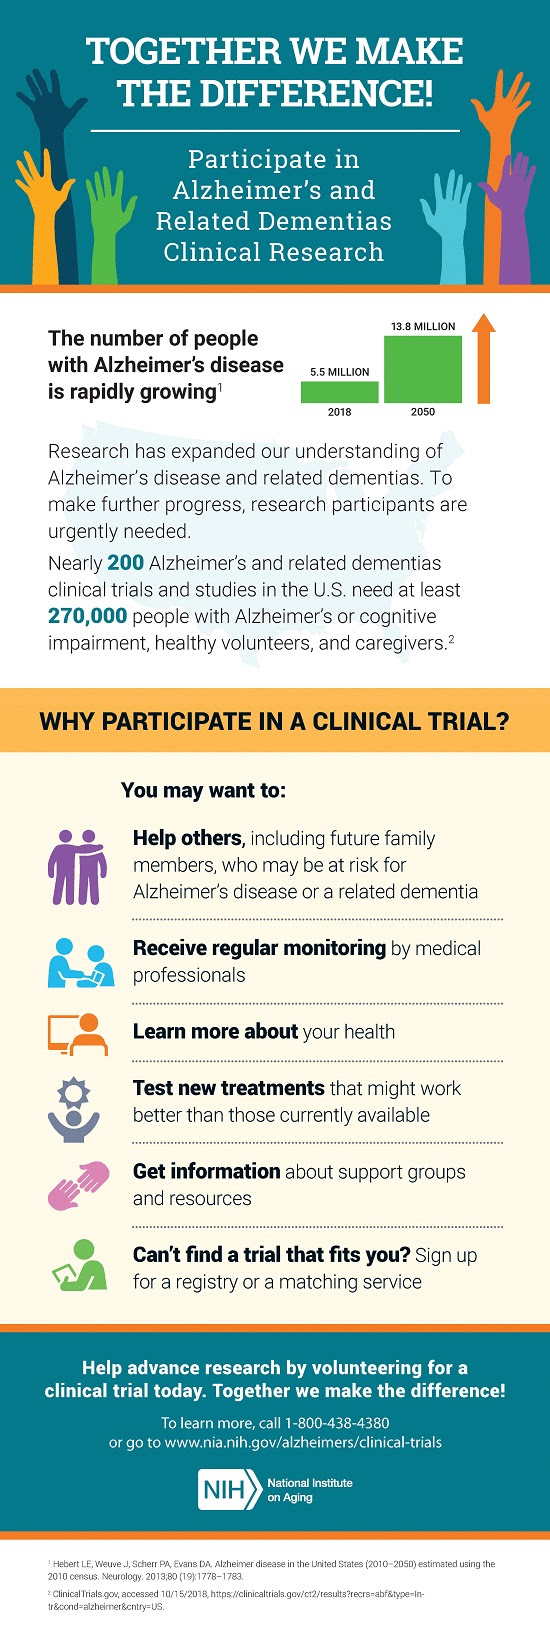 Together we make the difference: participate in alzheimer's and dementias research. Click through for full alt text